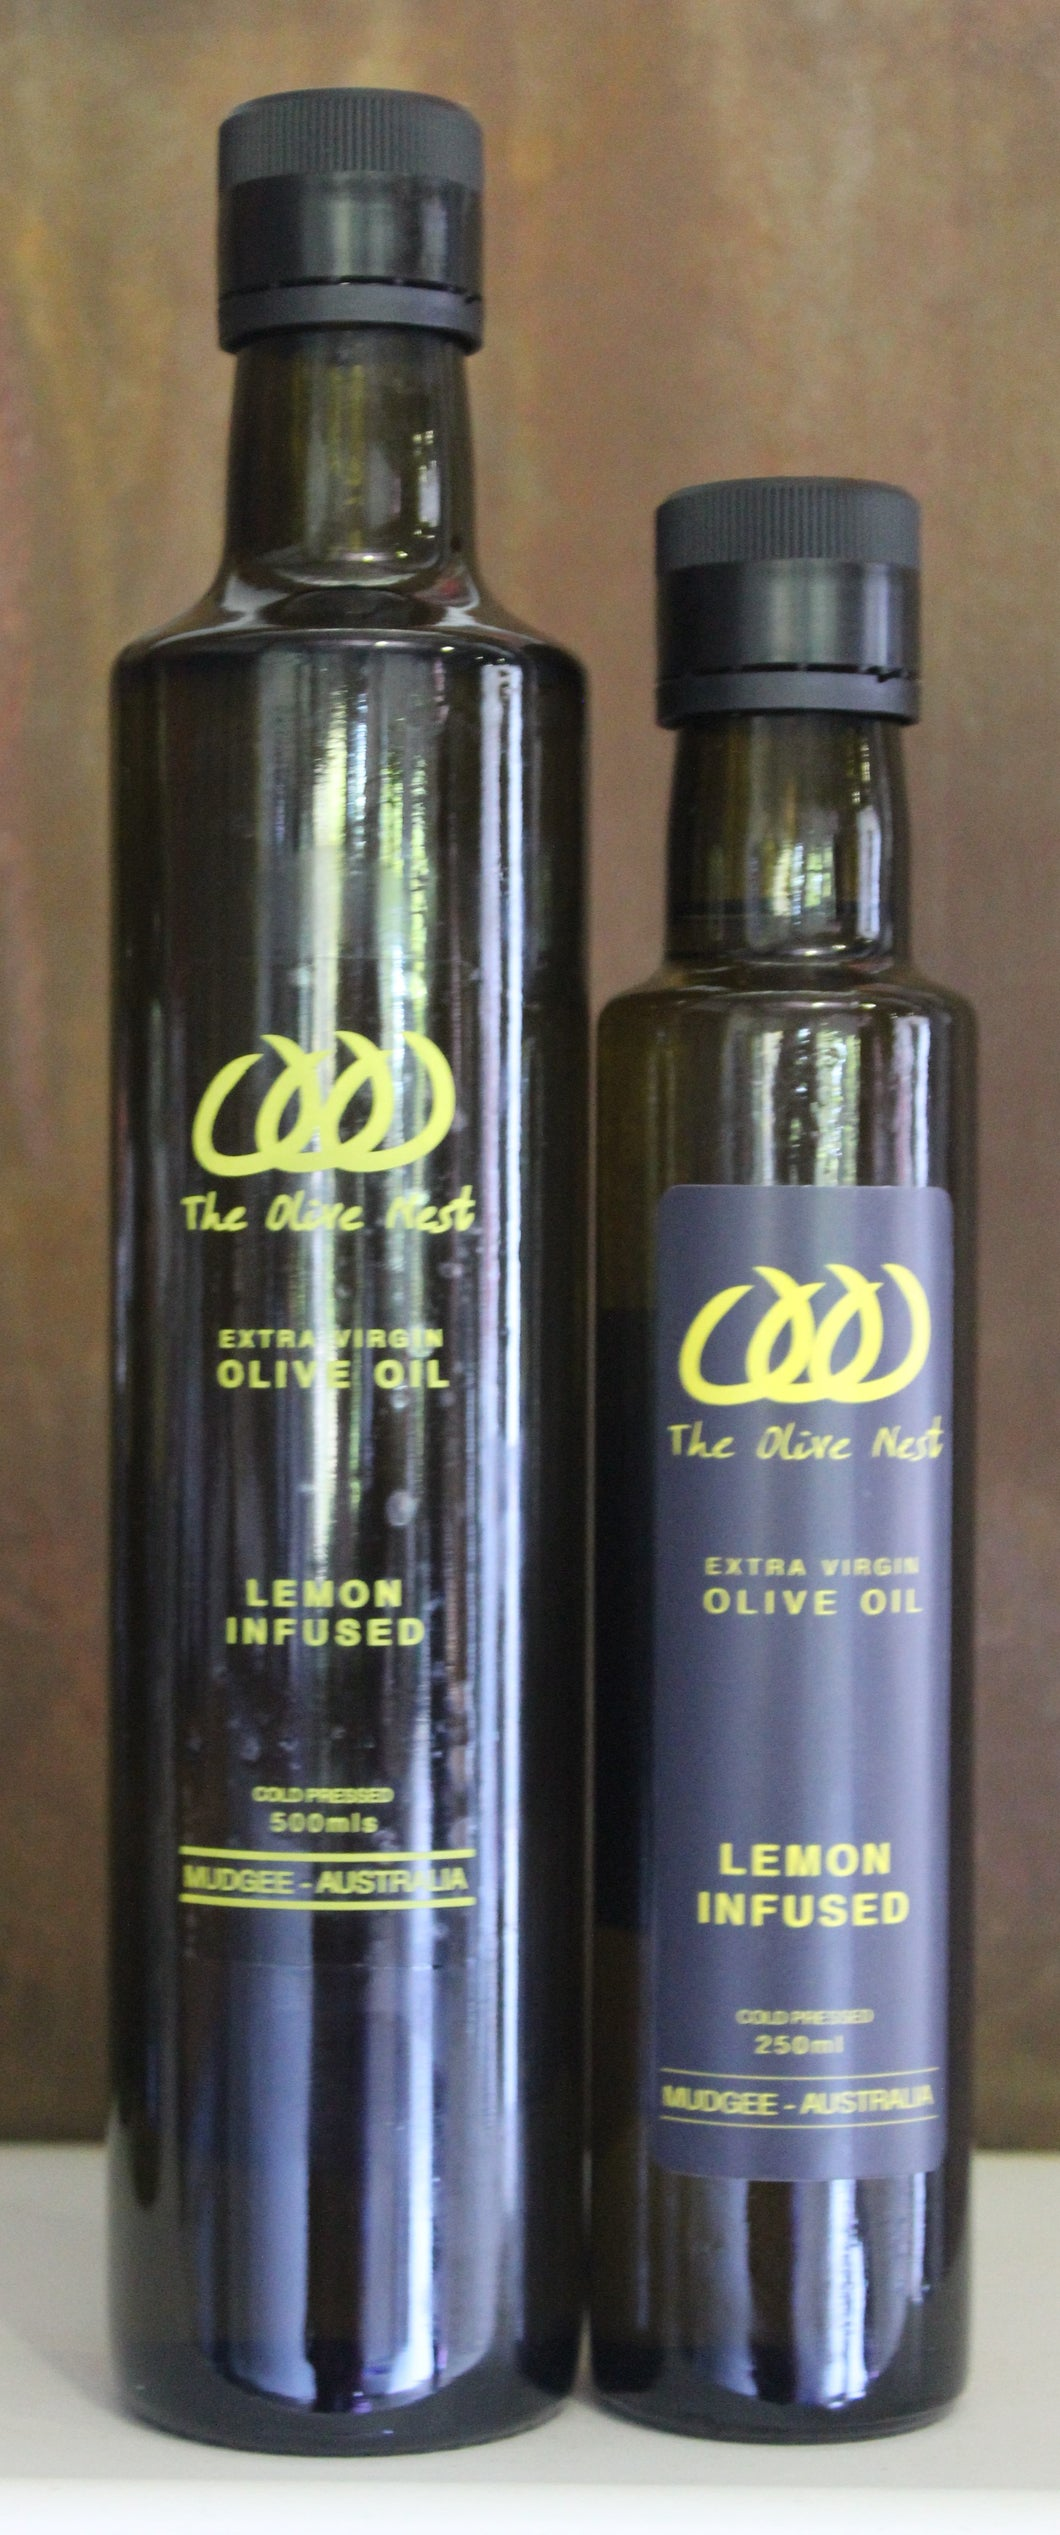 Lemon Infused Olive Oil from